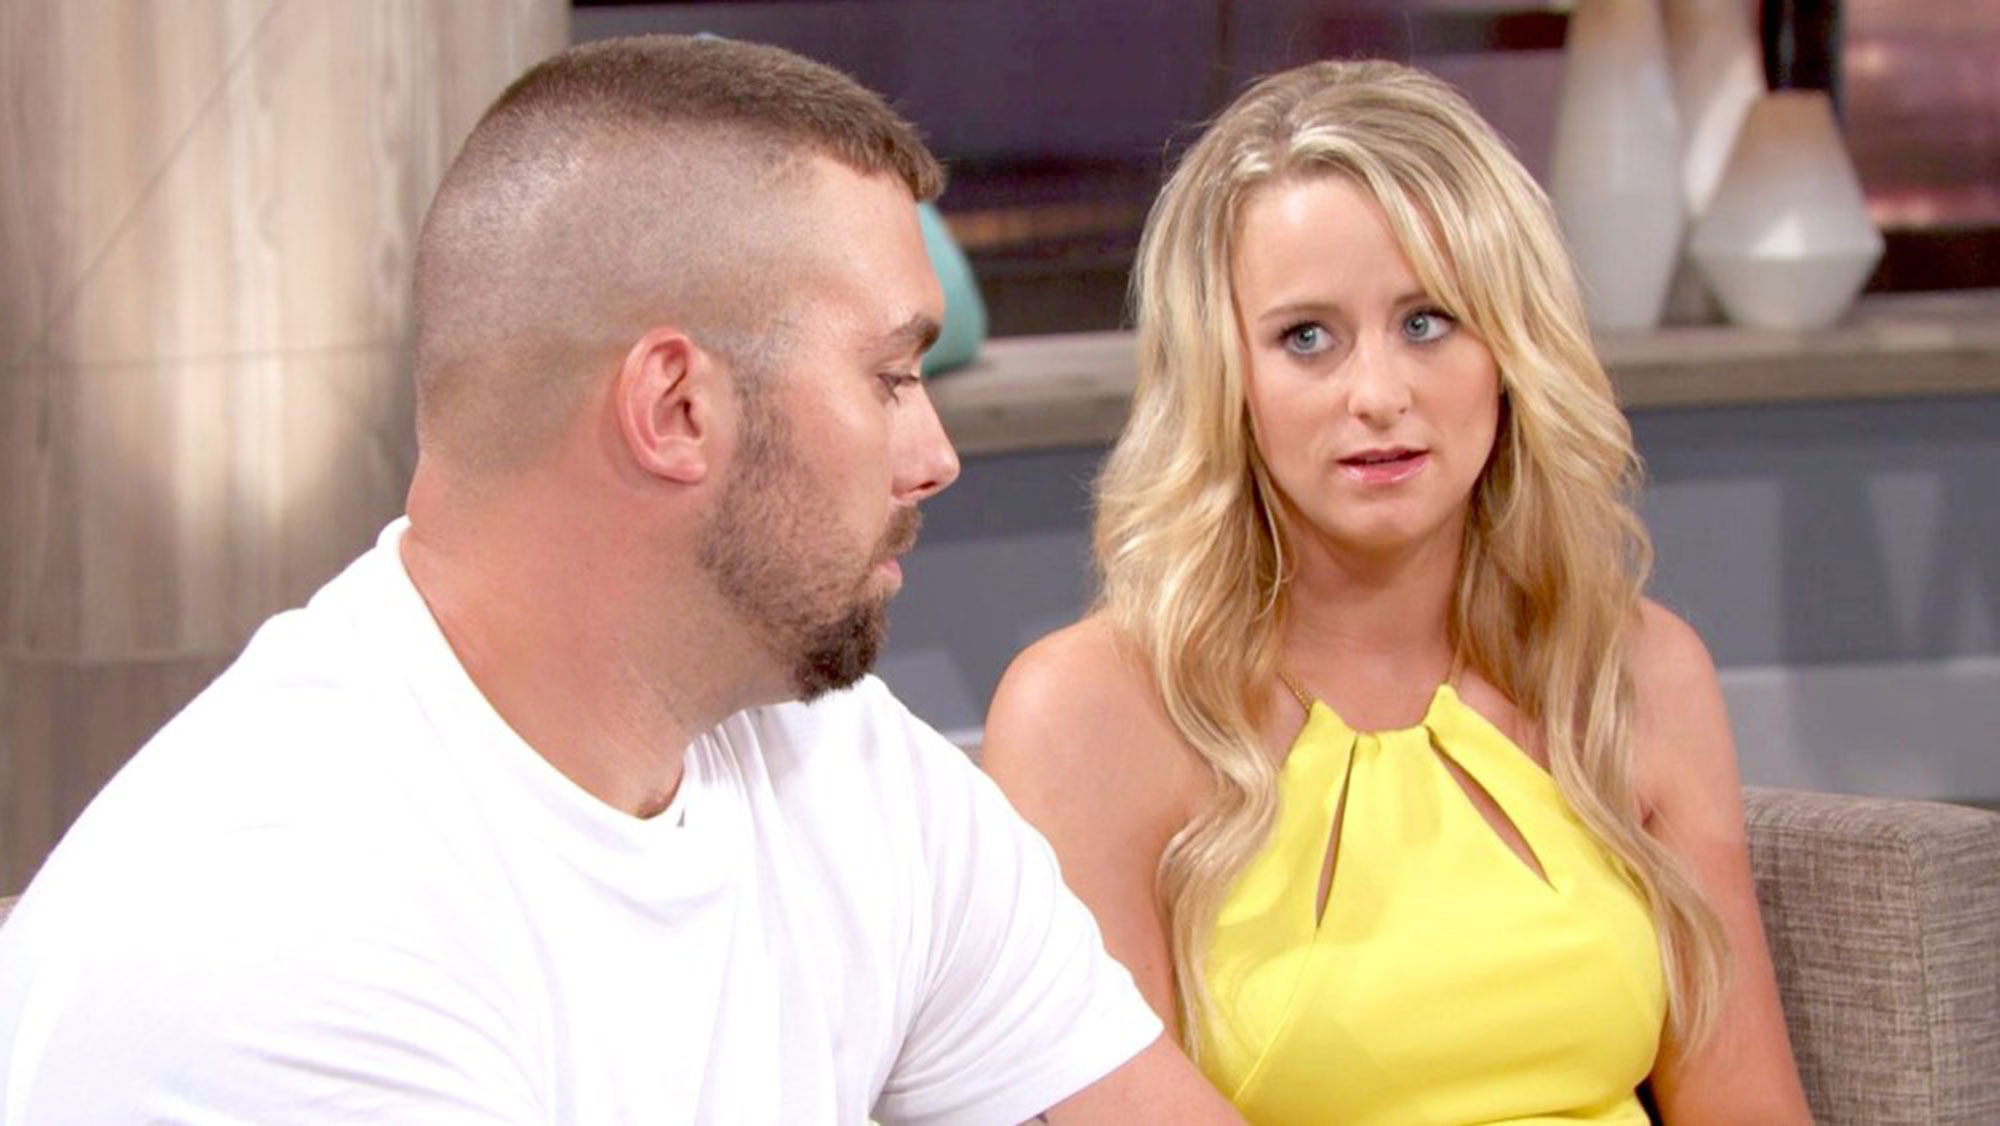 """teen mom stars Coparenting Corey Simms and Leah Messer - Short and sweet! """" Corey [ Simms ] and I, we have been co-parenting really well,"""" Leah Messer revealed on The Steve Harvey Show in April 2016."""